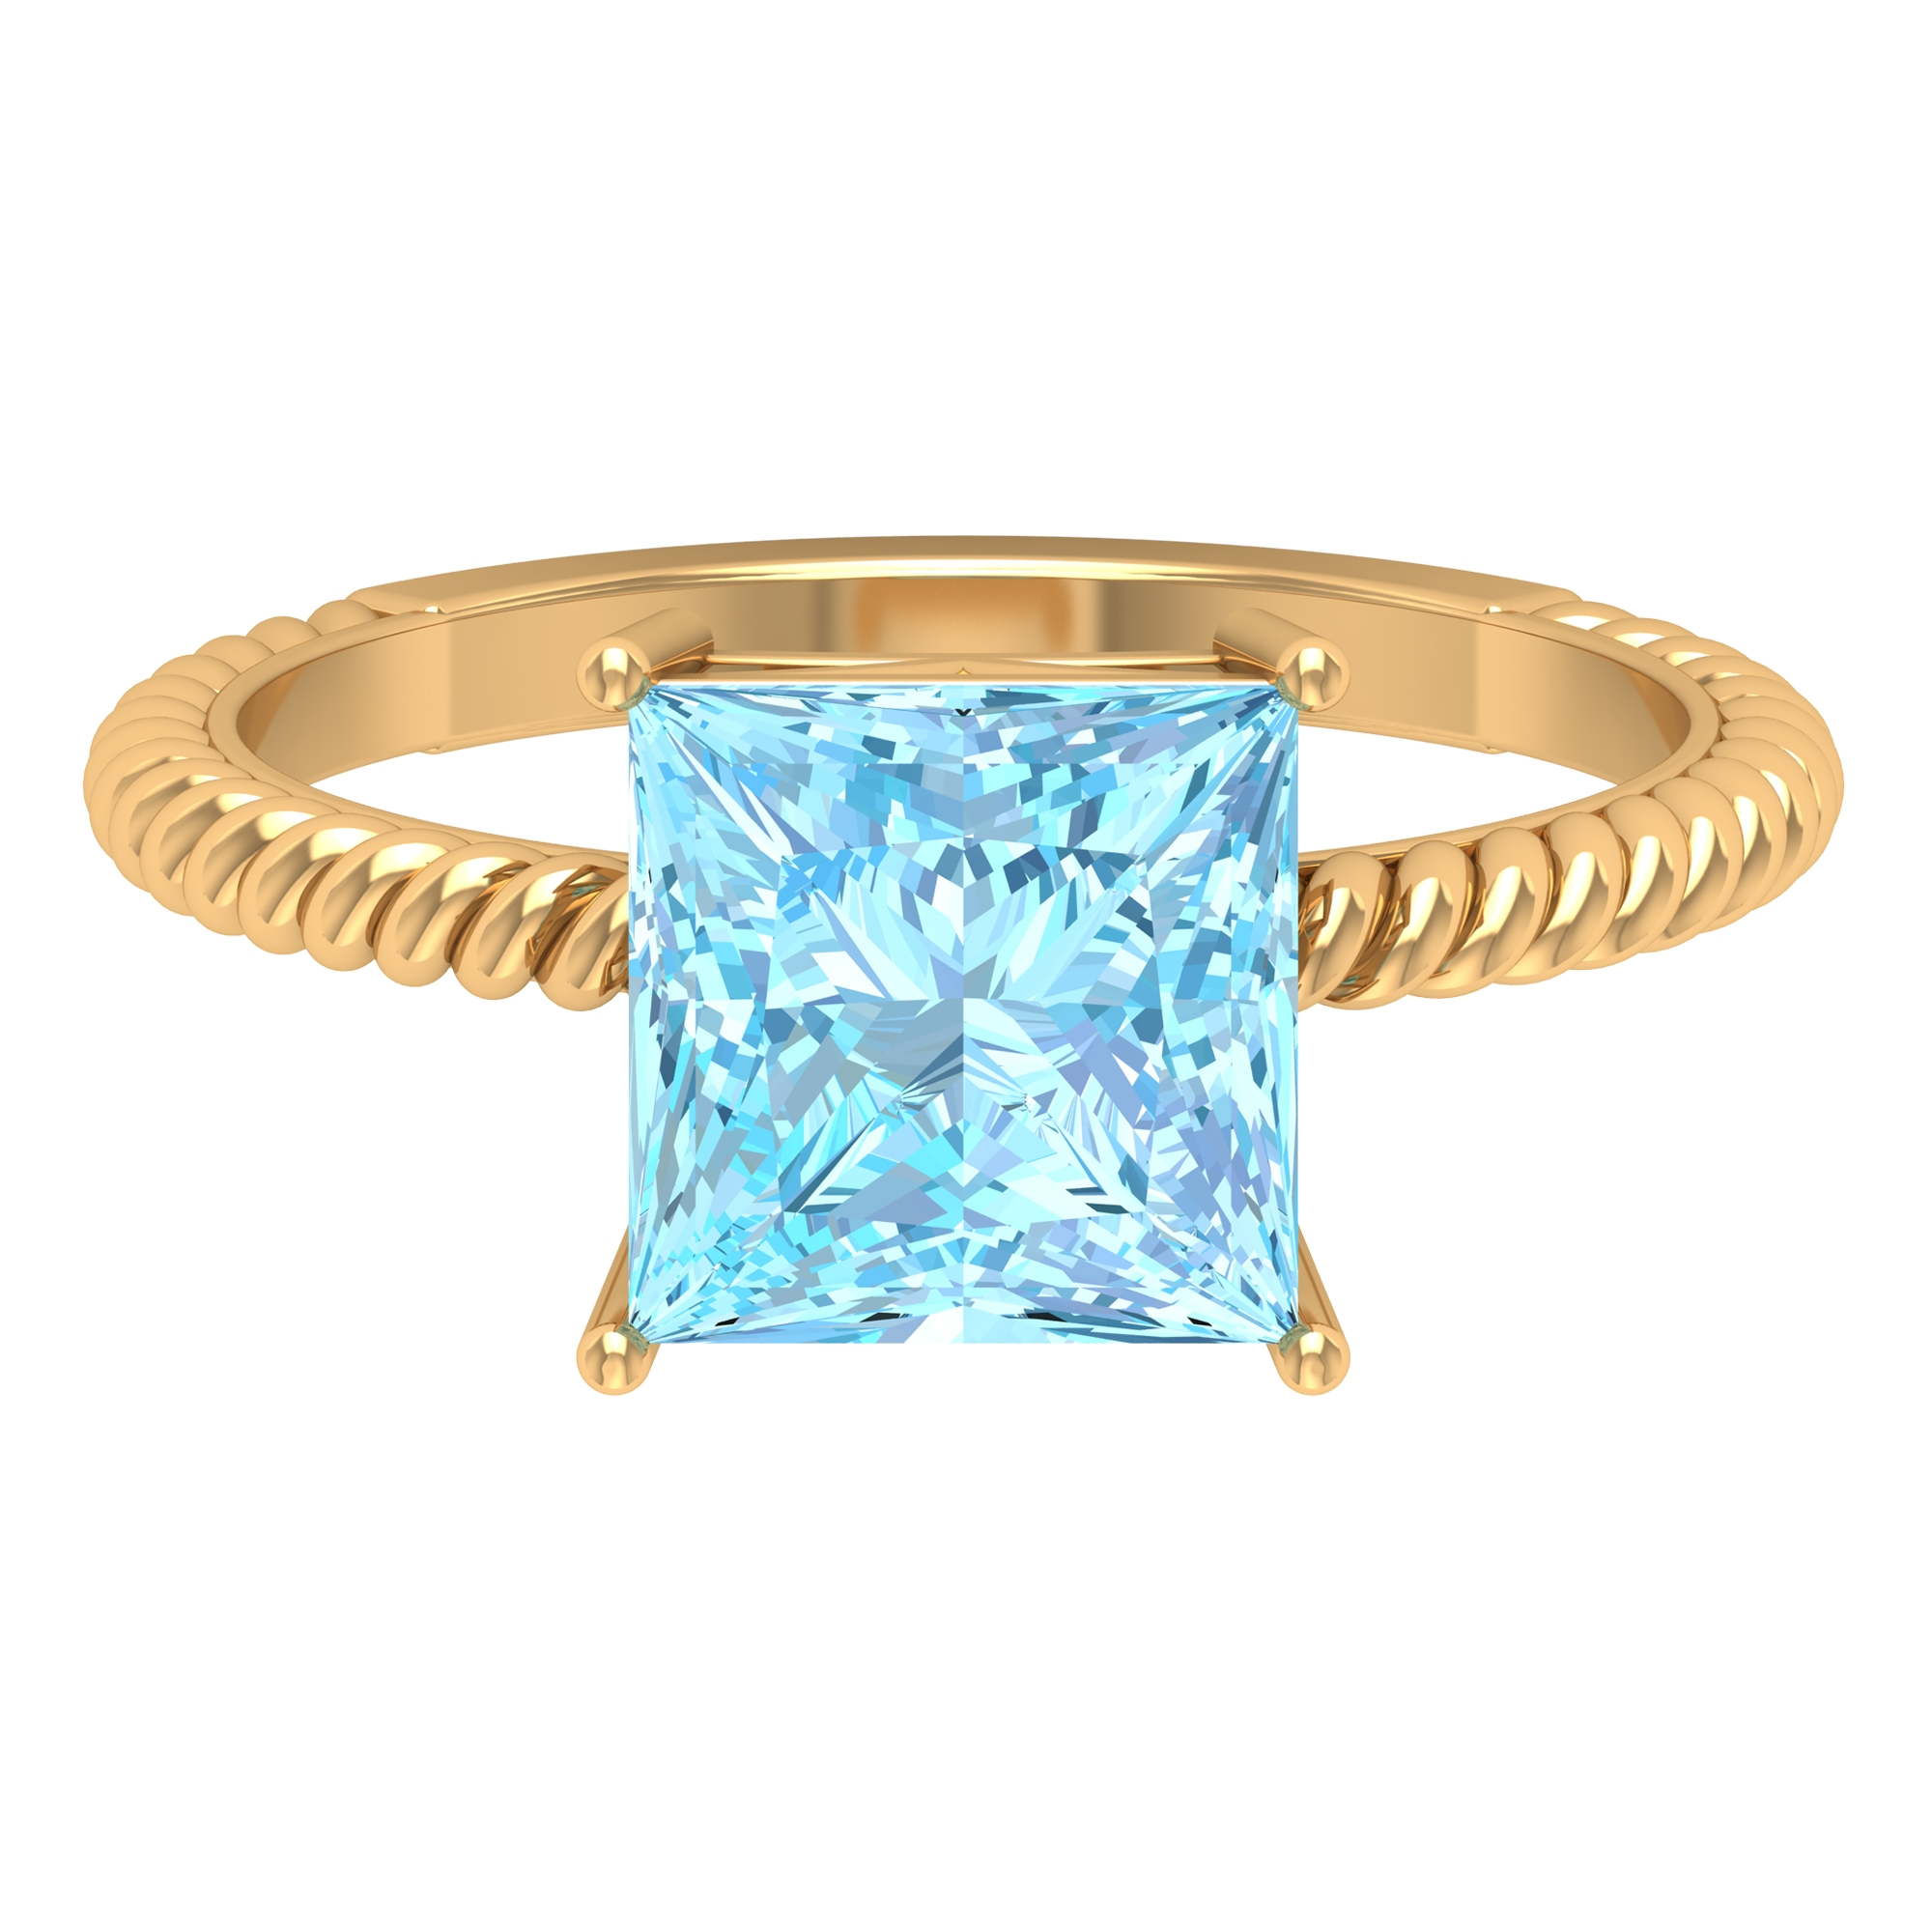 8X8 MM Princess Cut Aquamarine Solitaire Ring in 4 Prong Setting with Twisted Rope Details